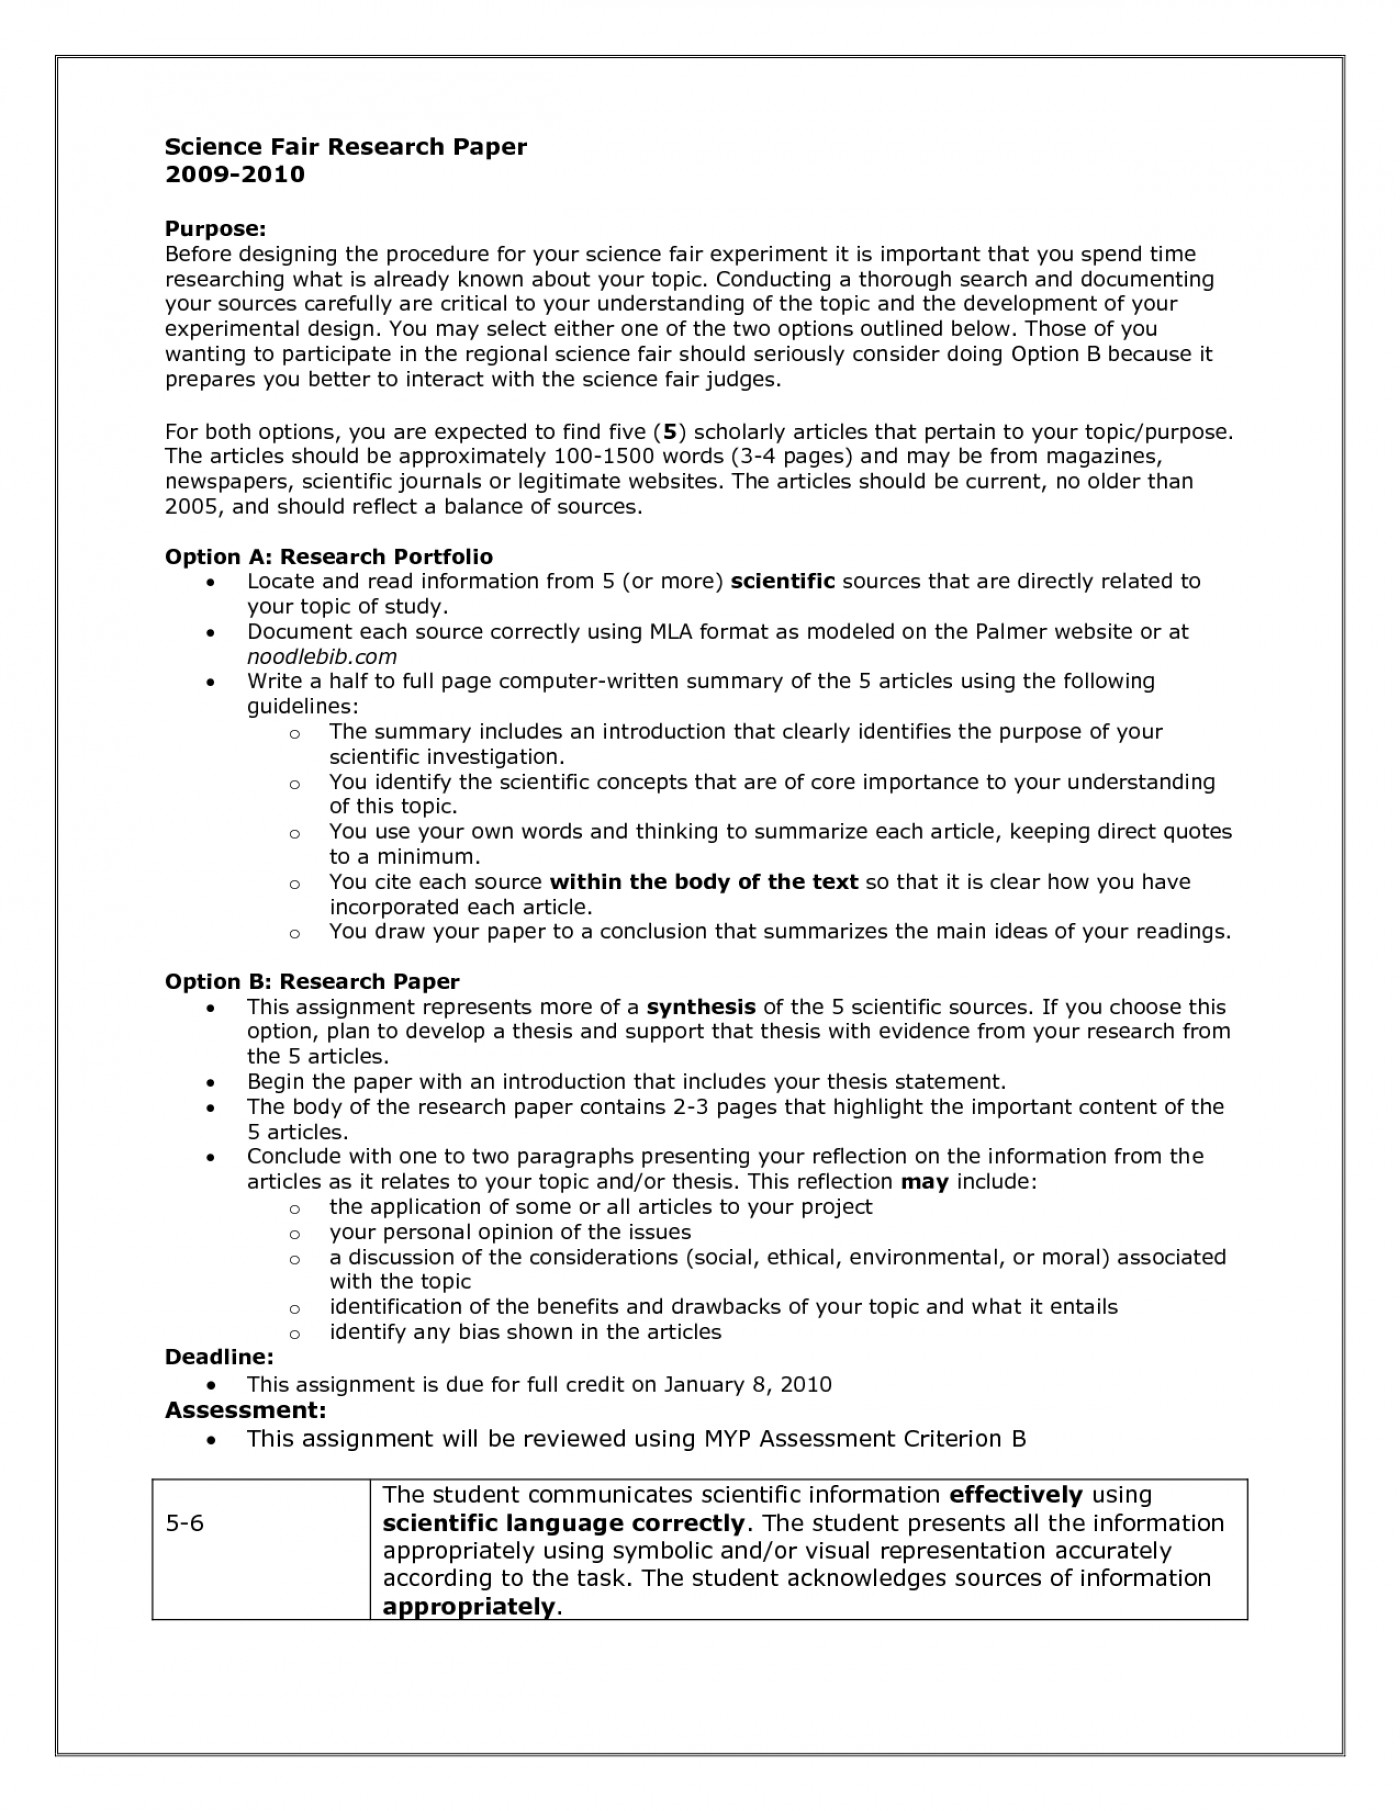 002 Research Paper Format For Writing Scientific Best Photos Of Science Procedure Template Fair Essay Example L Unique A 1400